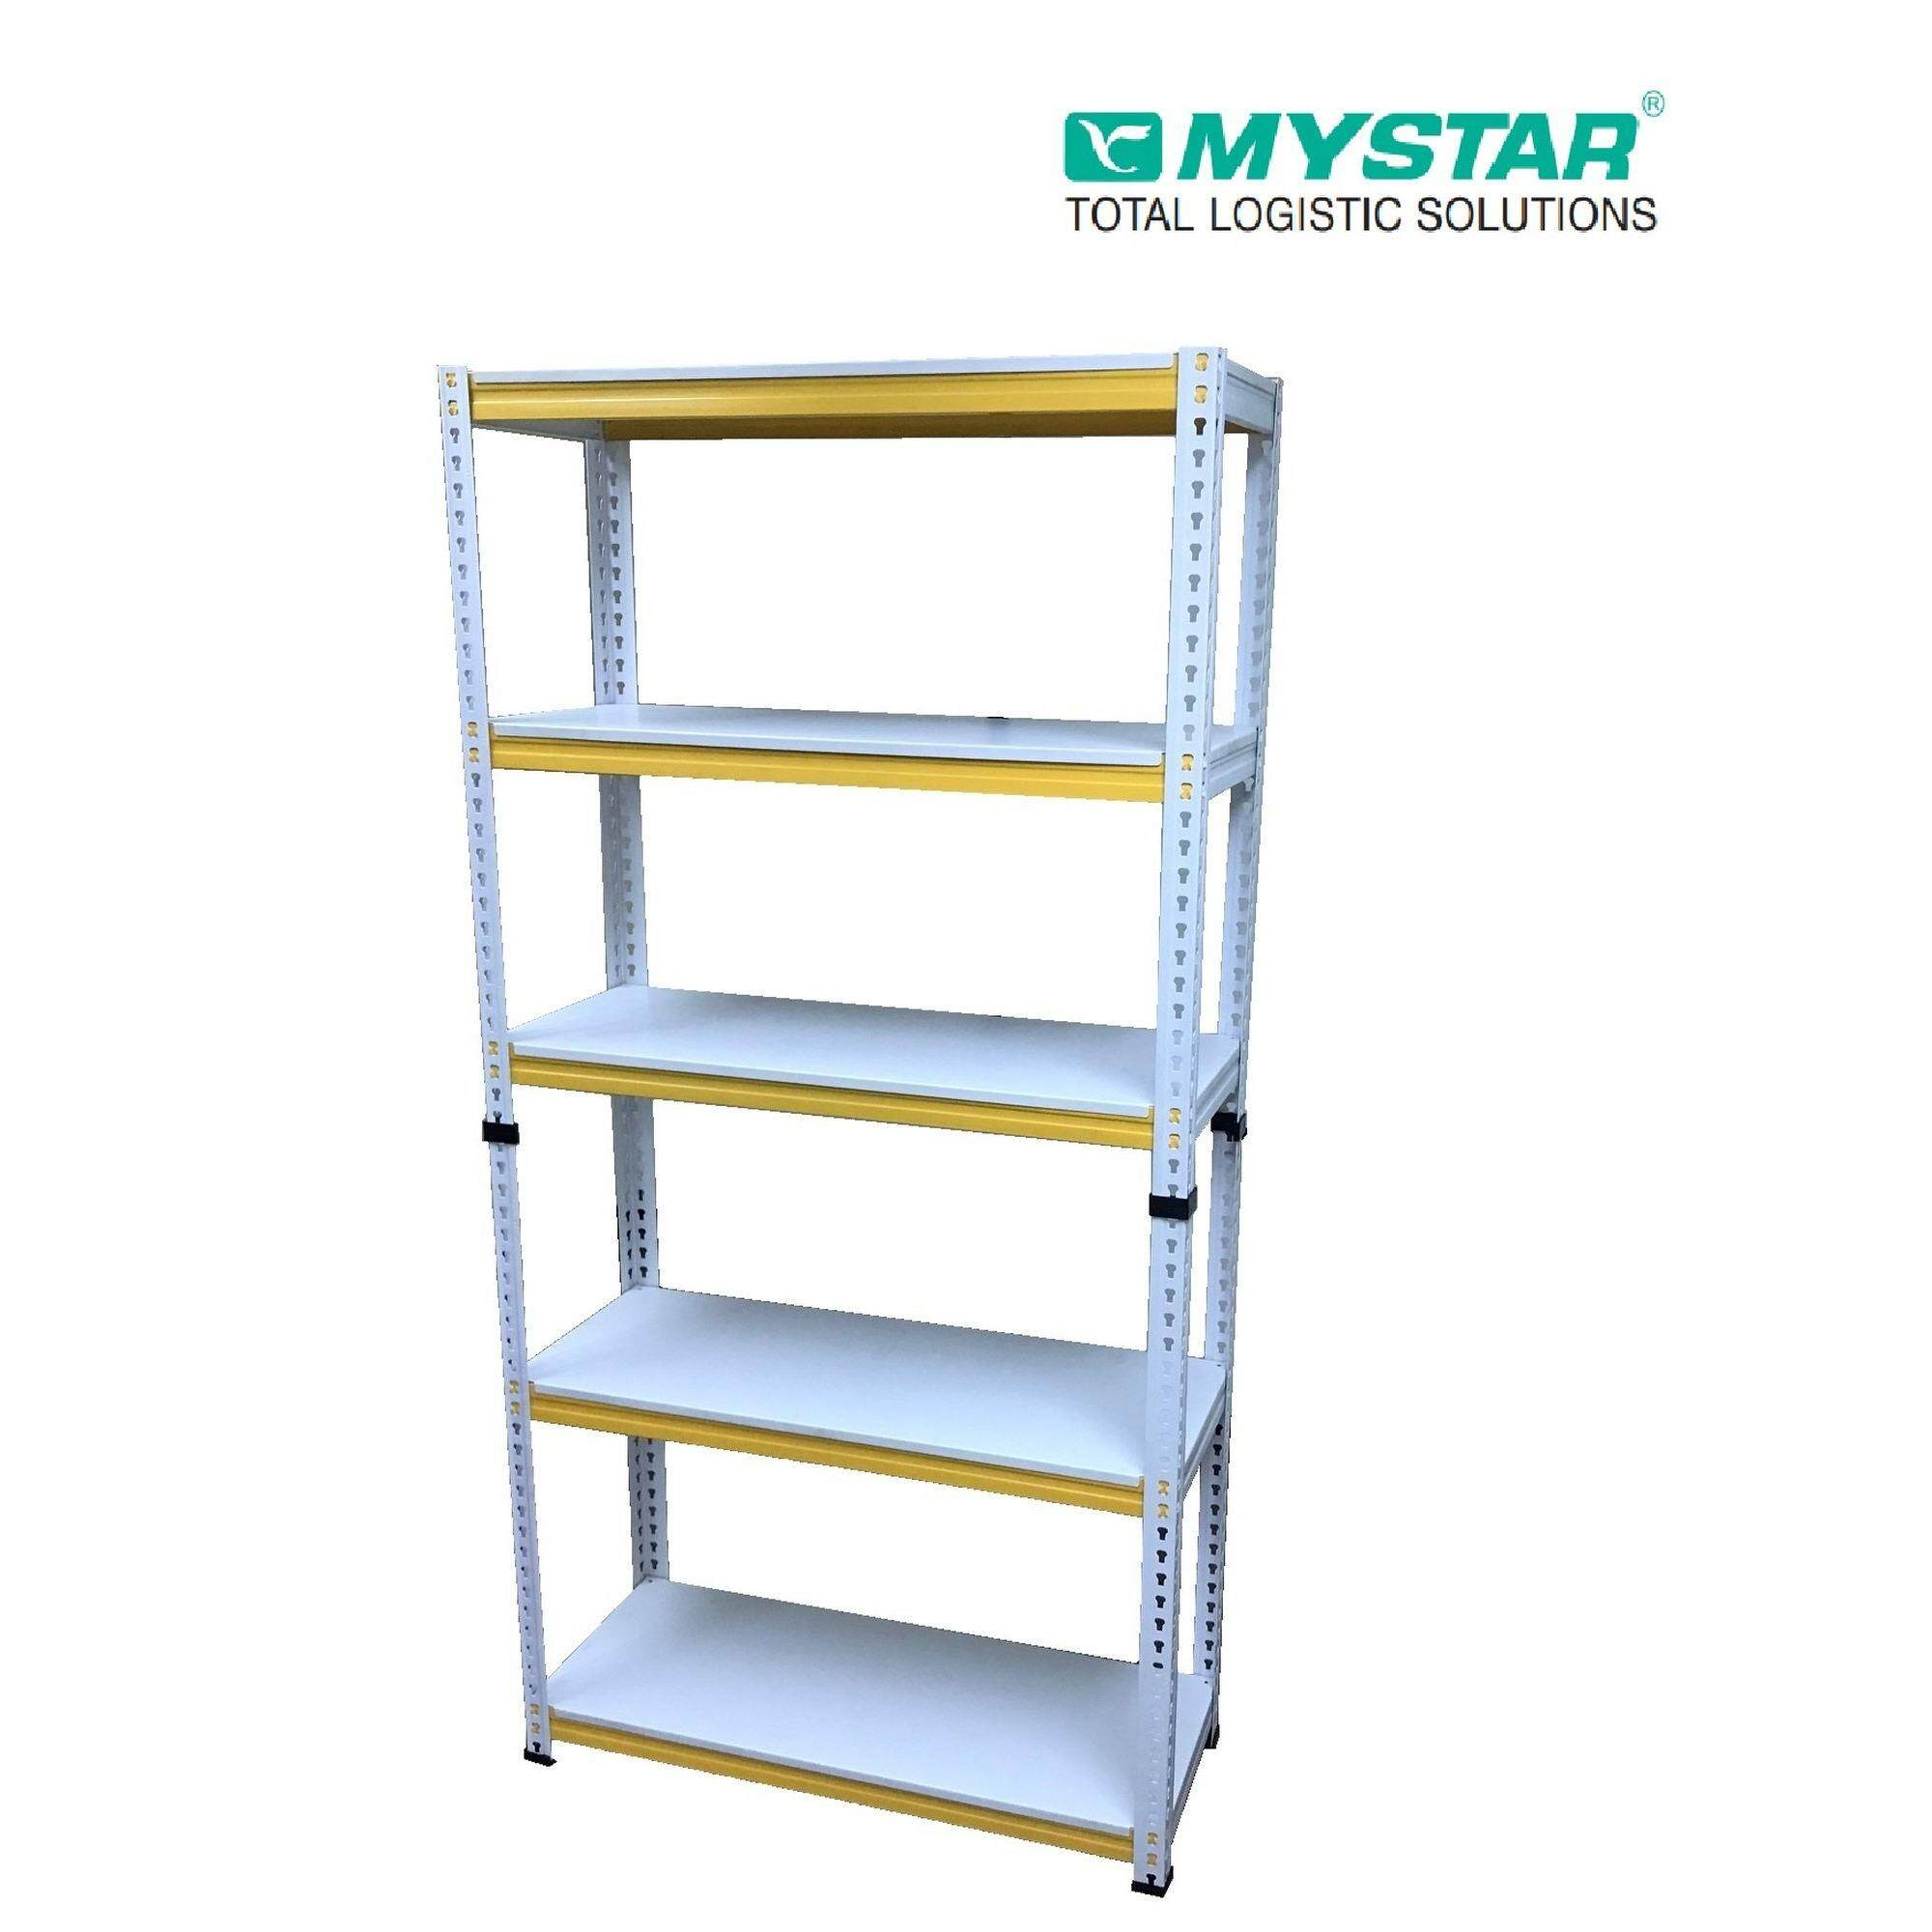 organization wayfair love w units racks basics ll shelving x you unit rack shelf h shelves storage